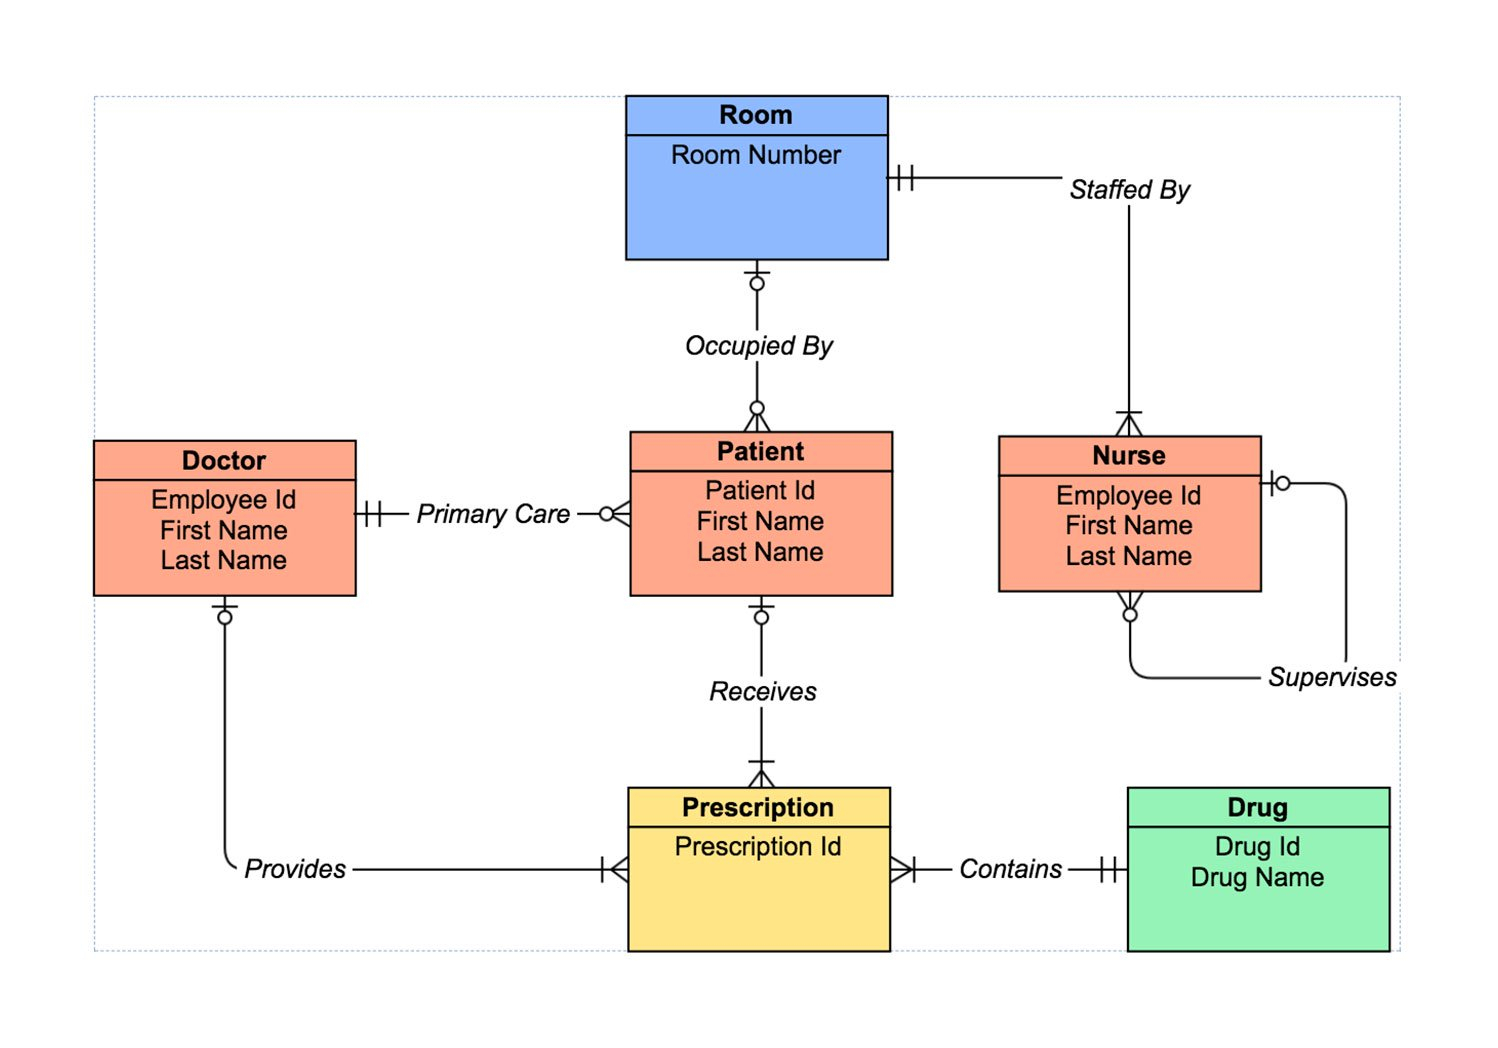 Draw Entity Relationship Diagrams Online | Er Diagram Tool within Online Erd Tool